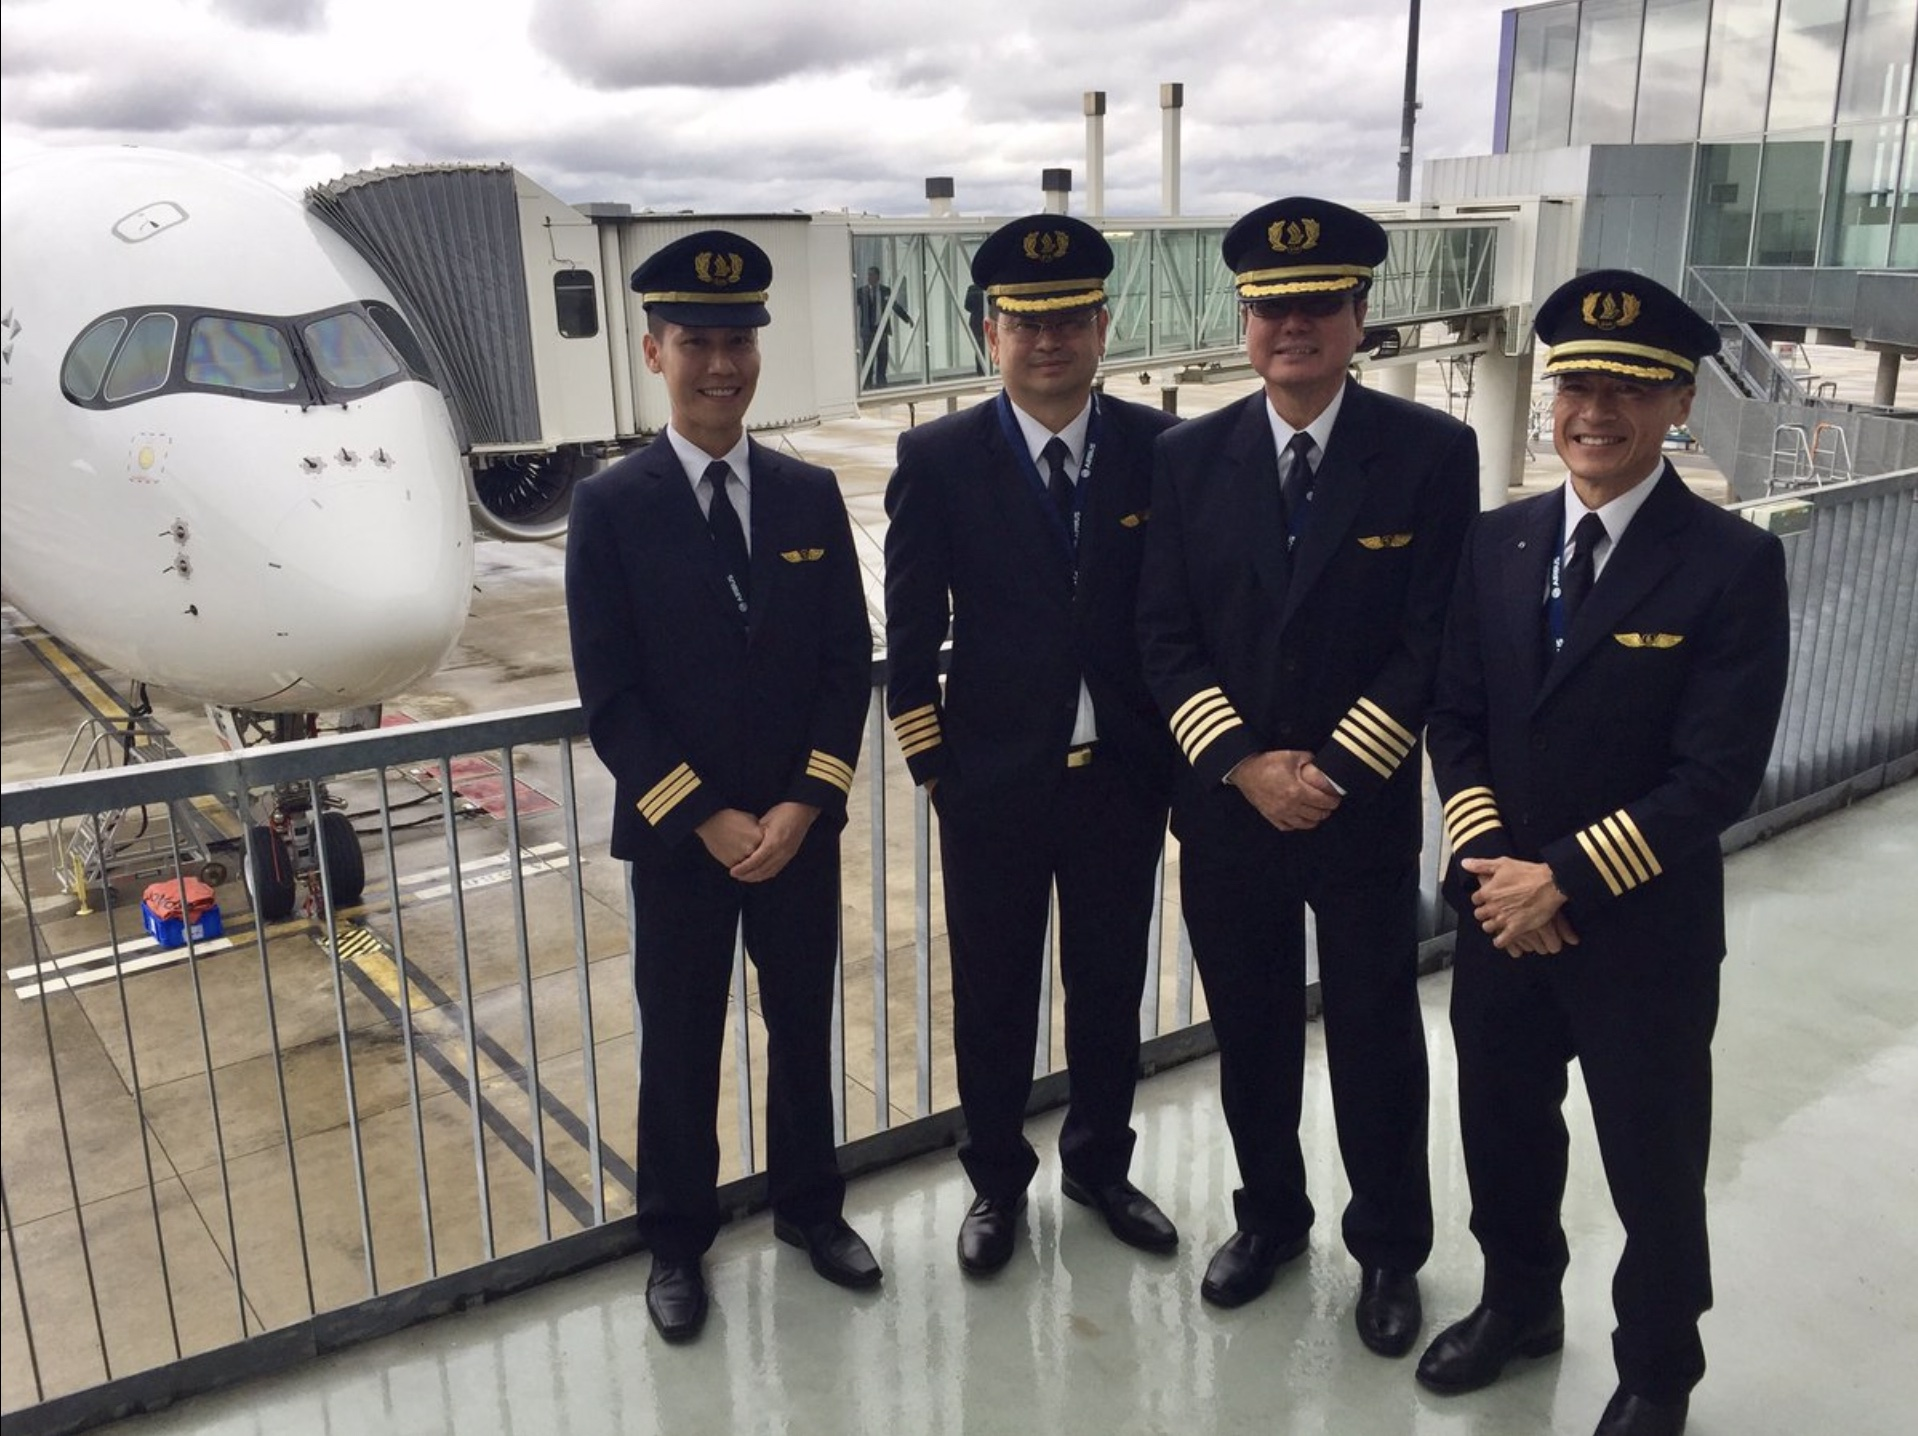 Showing group of Singapore Airline Pilots